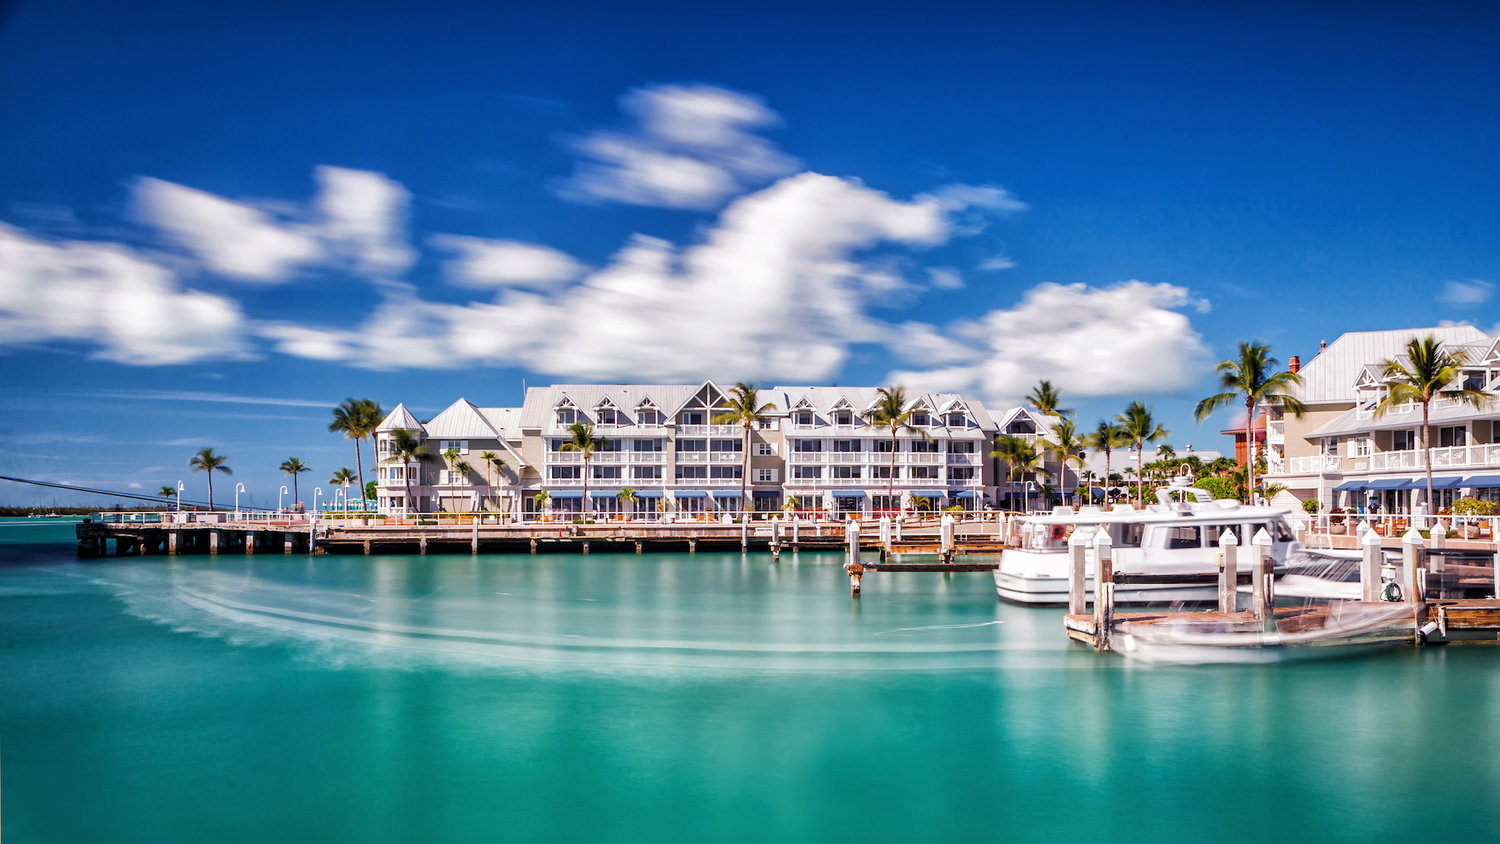 margaritaville key west resort & marina | official site